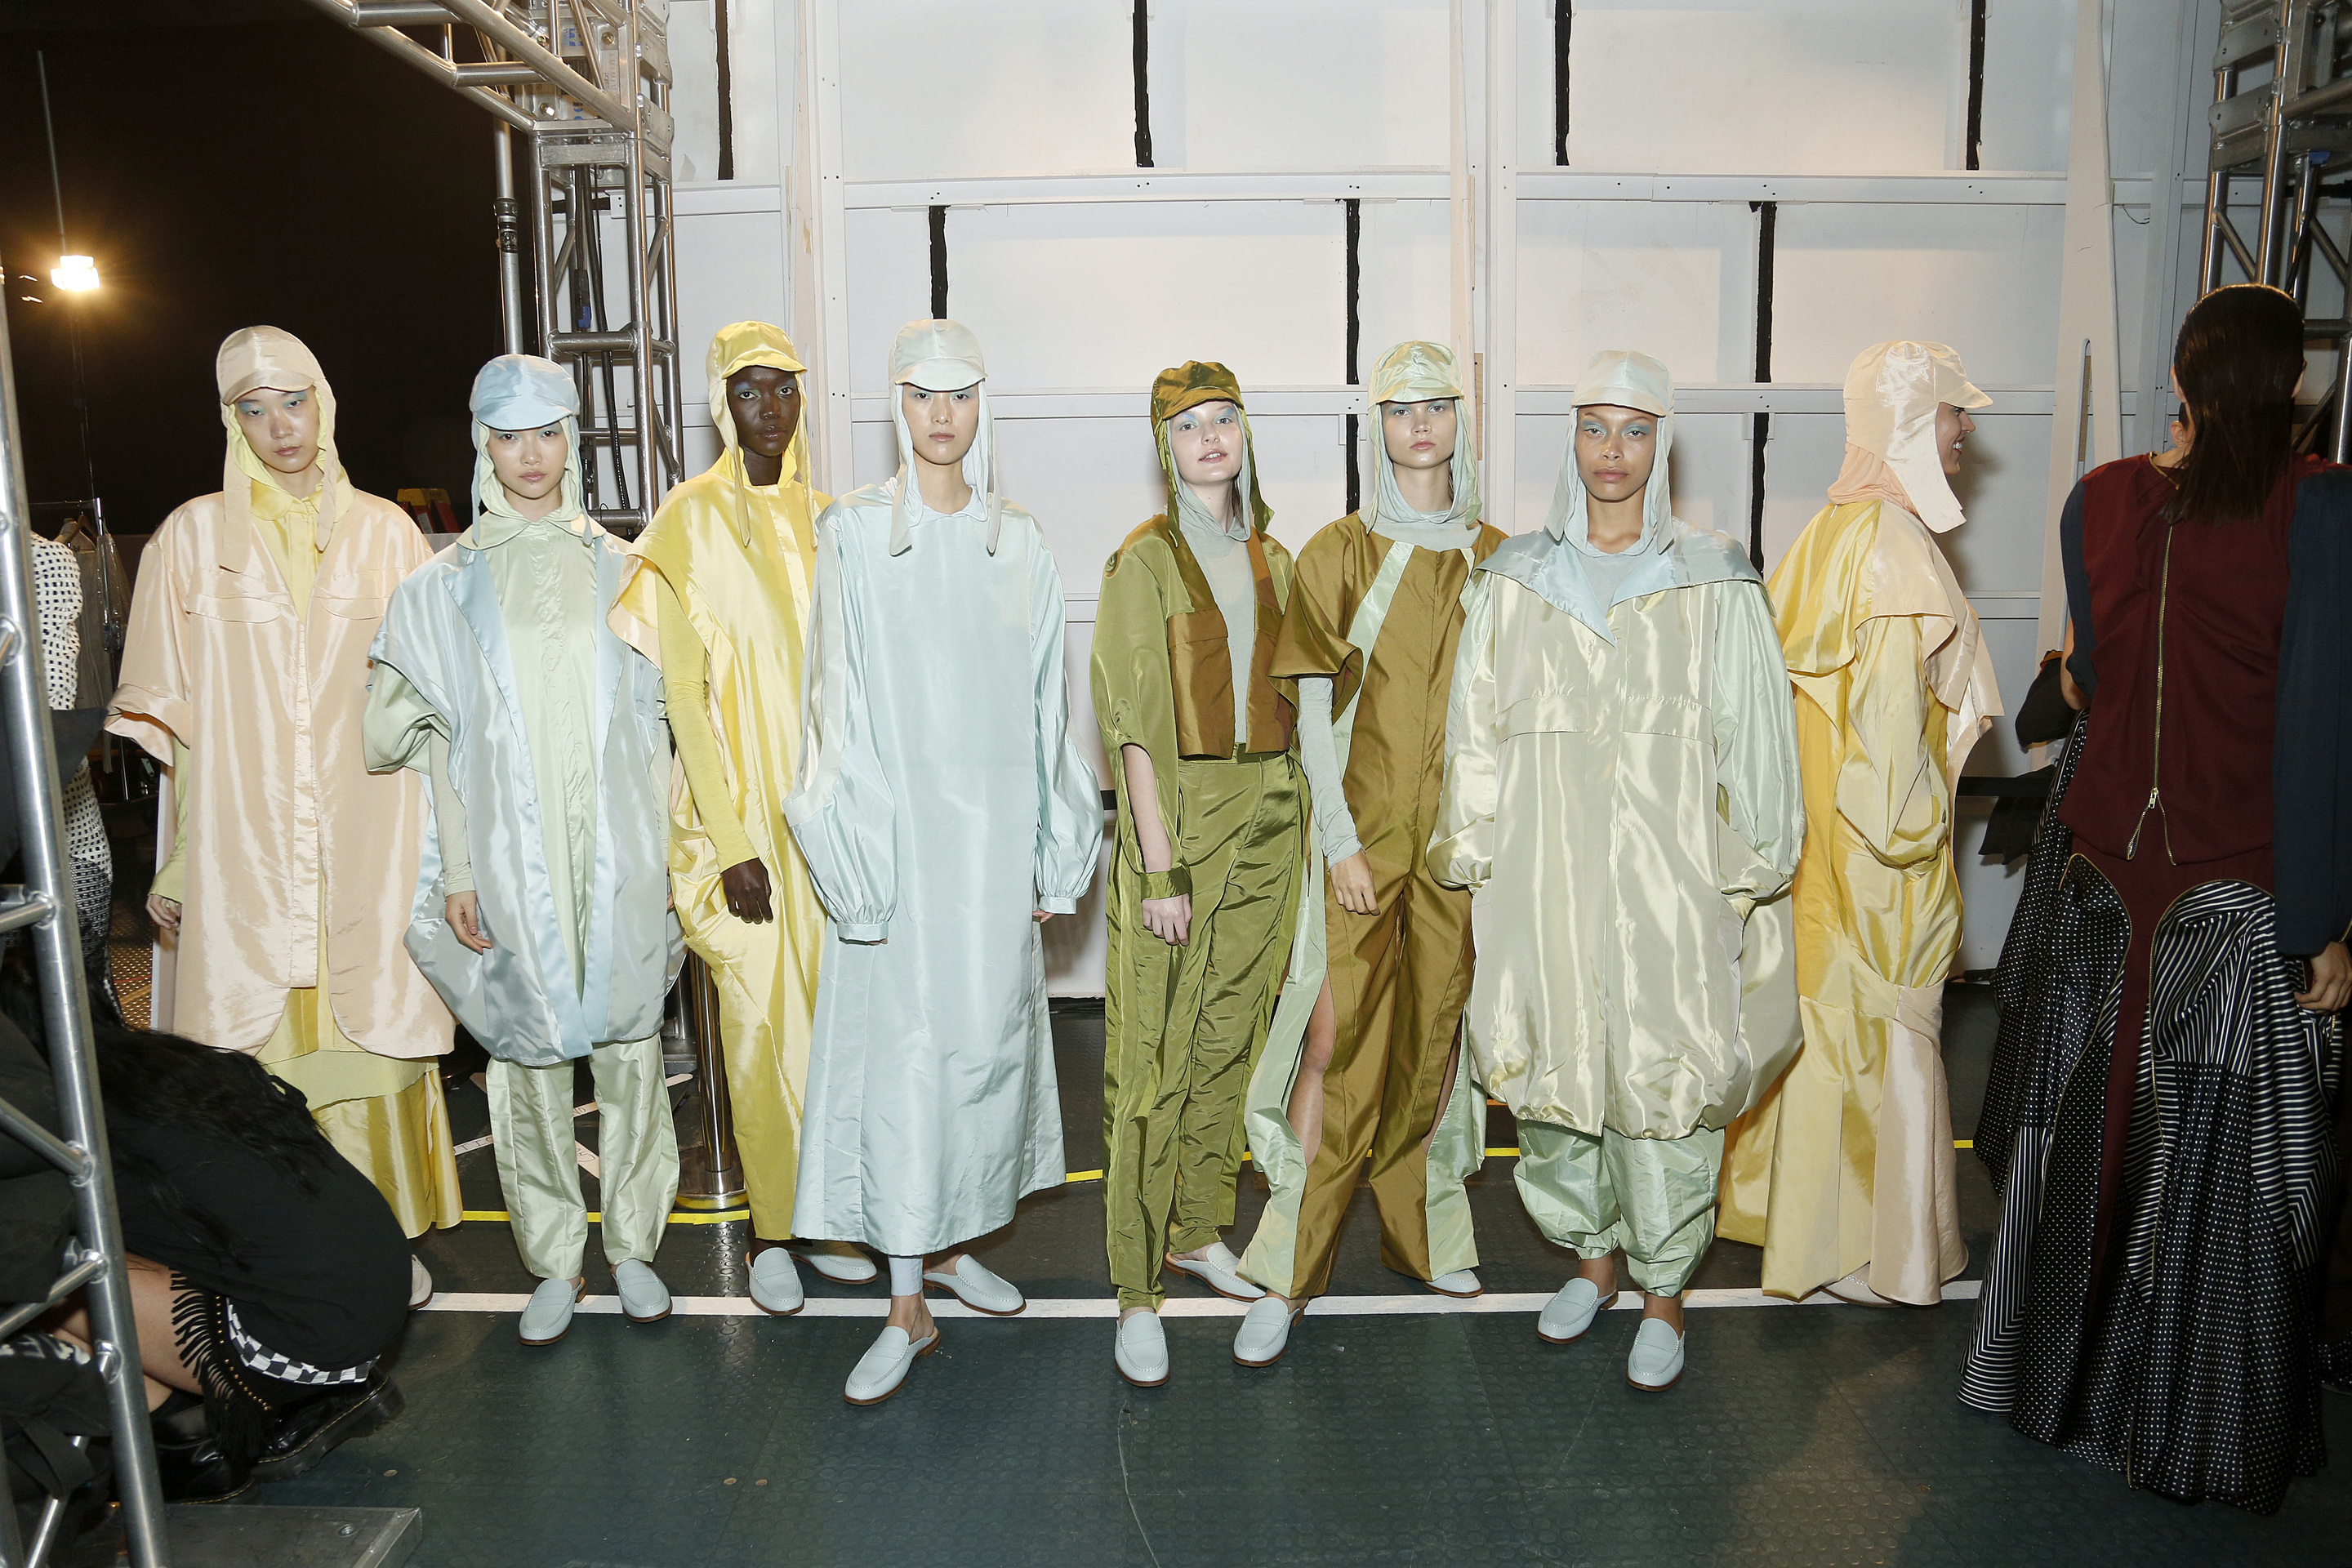 Academy Of Art University Spring 2020 Collections - Backstage